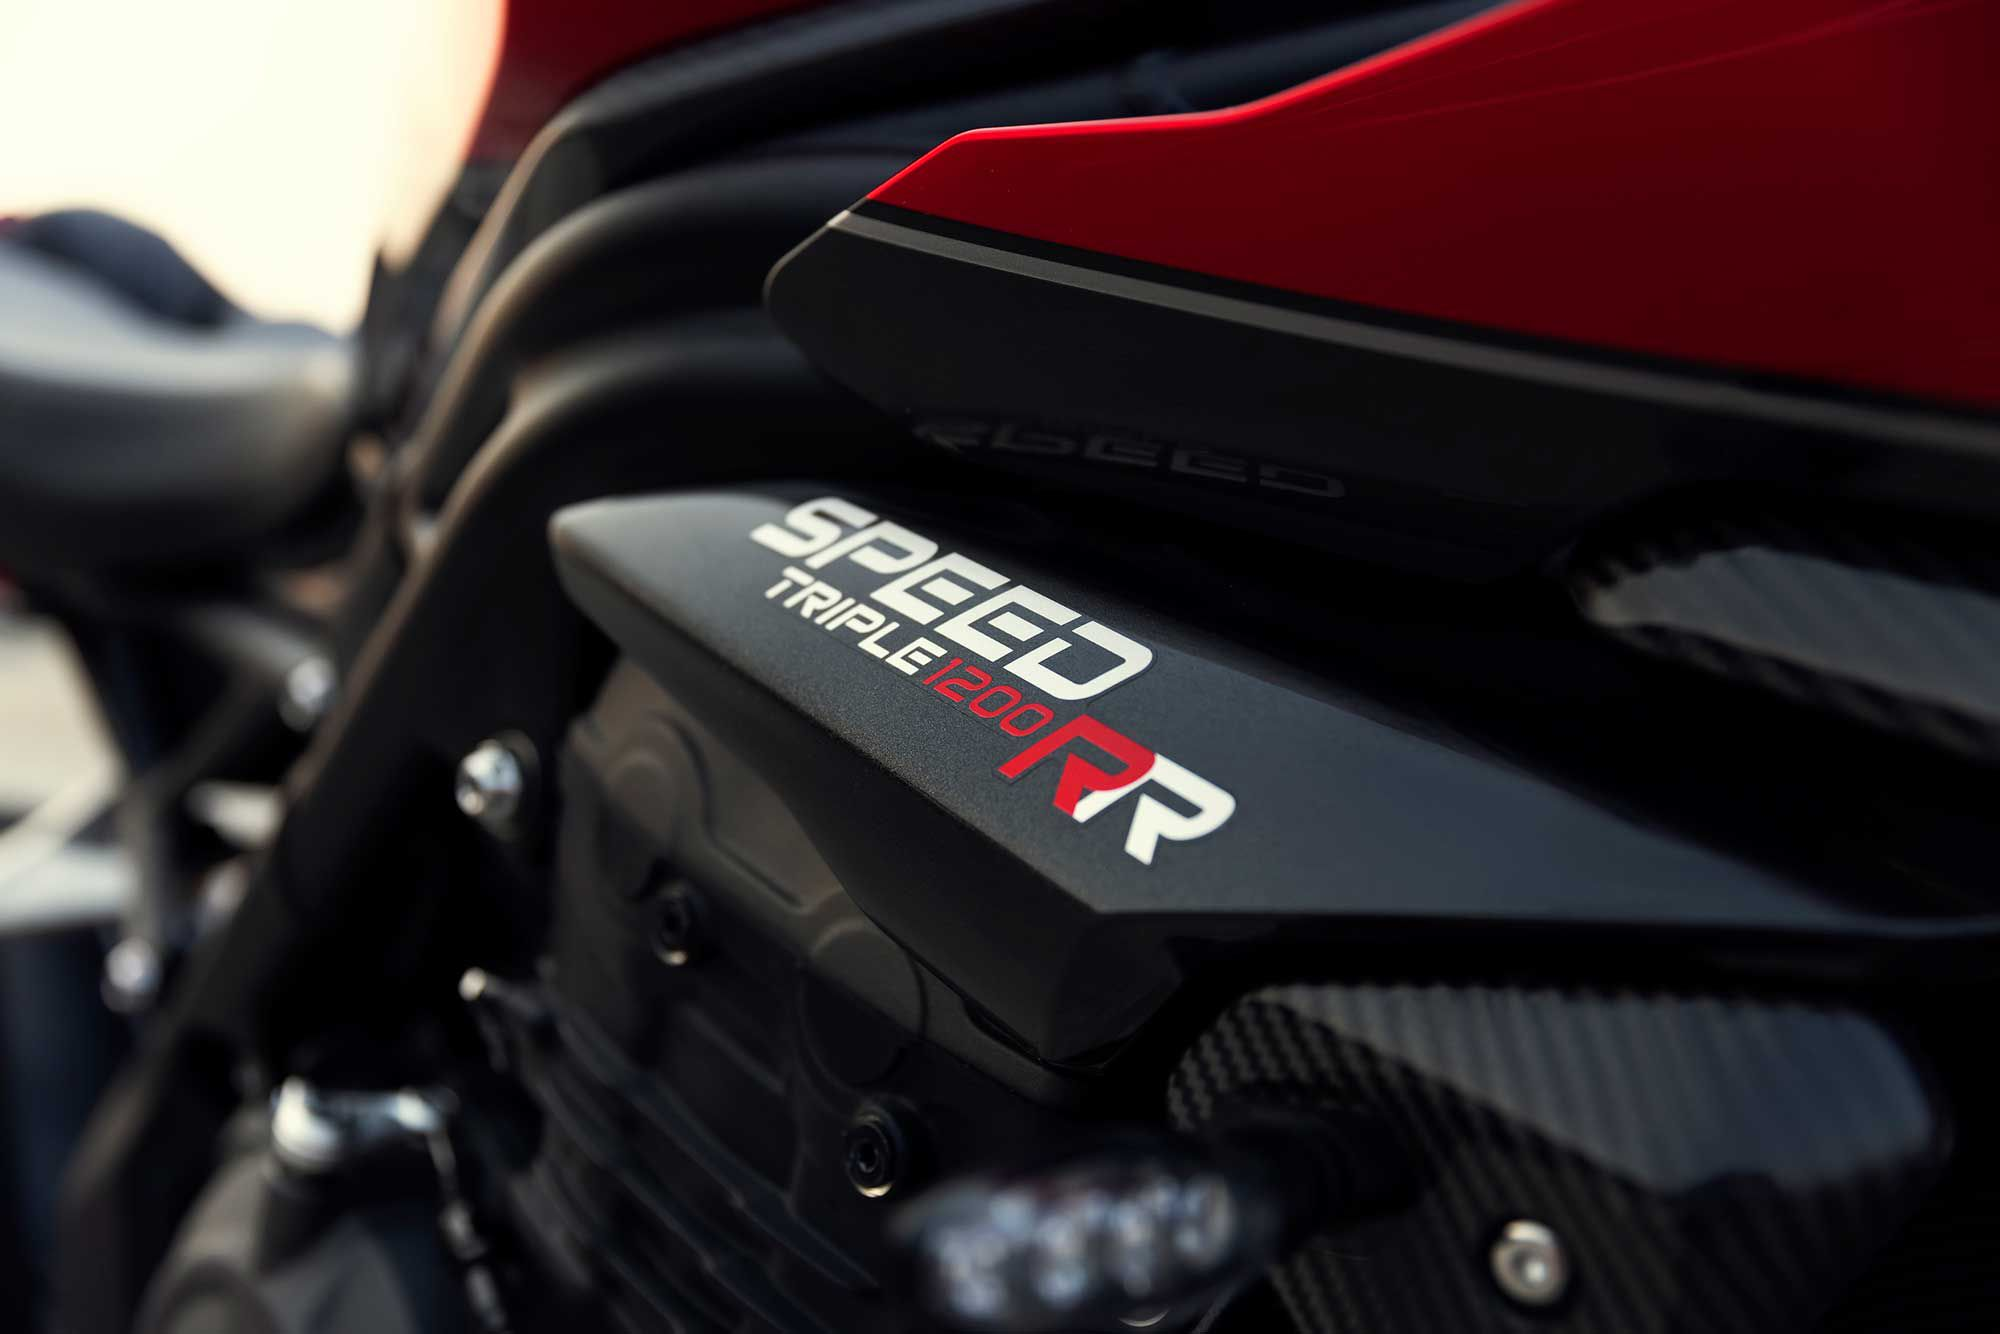 The new RR packs the same 1,160cc triple Triumph uses in the Speed Triple RS.